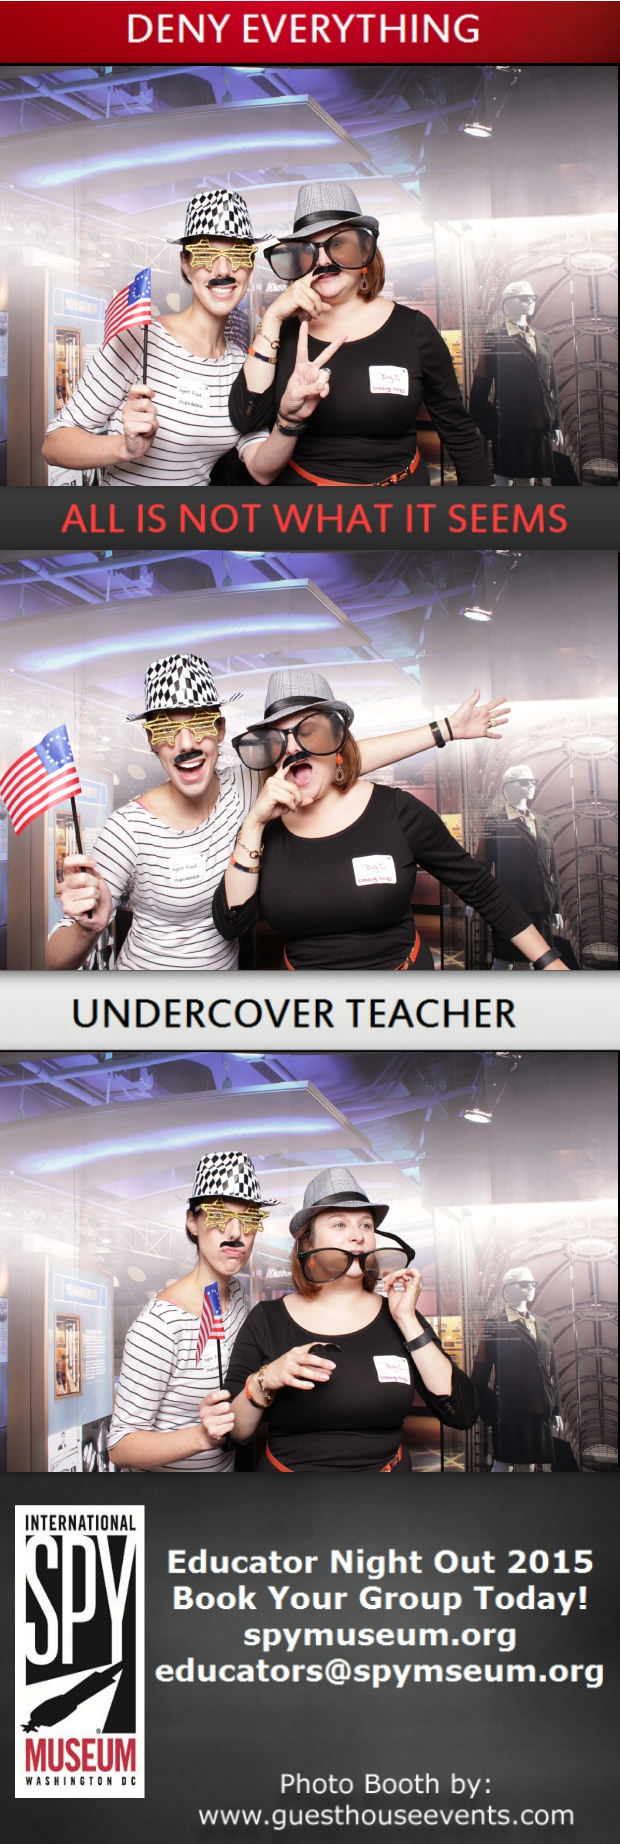 Guest House Events Photo Booth Spy Museum Educator Night Out (37).jpg